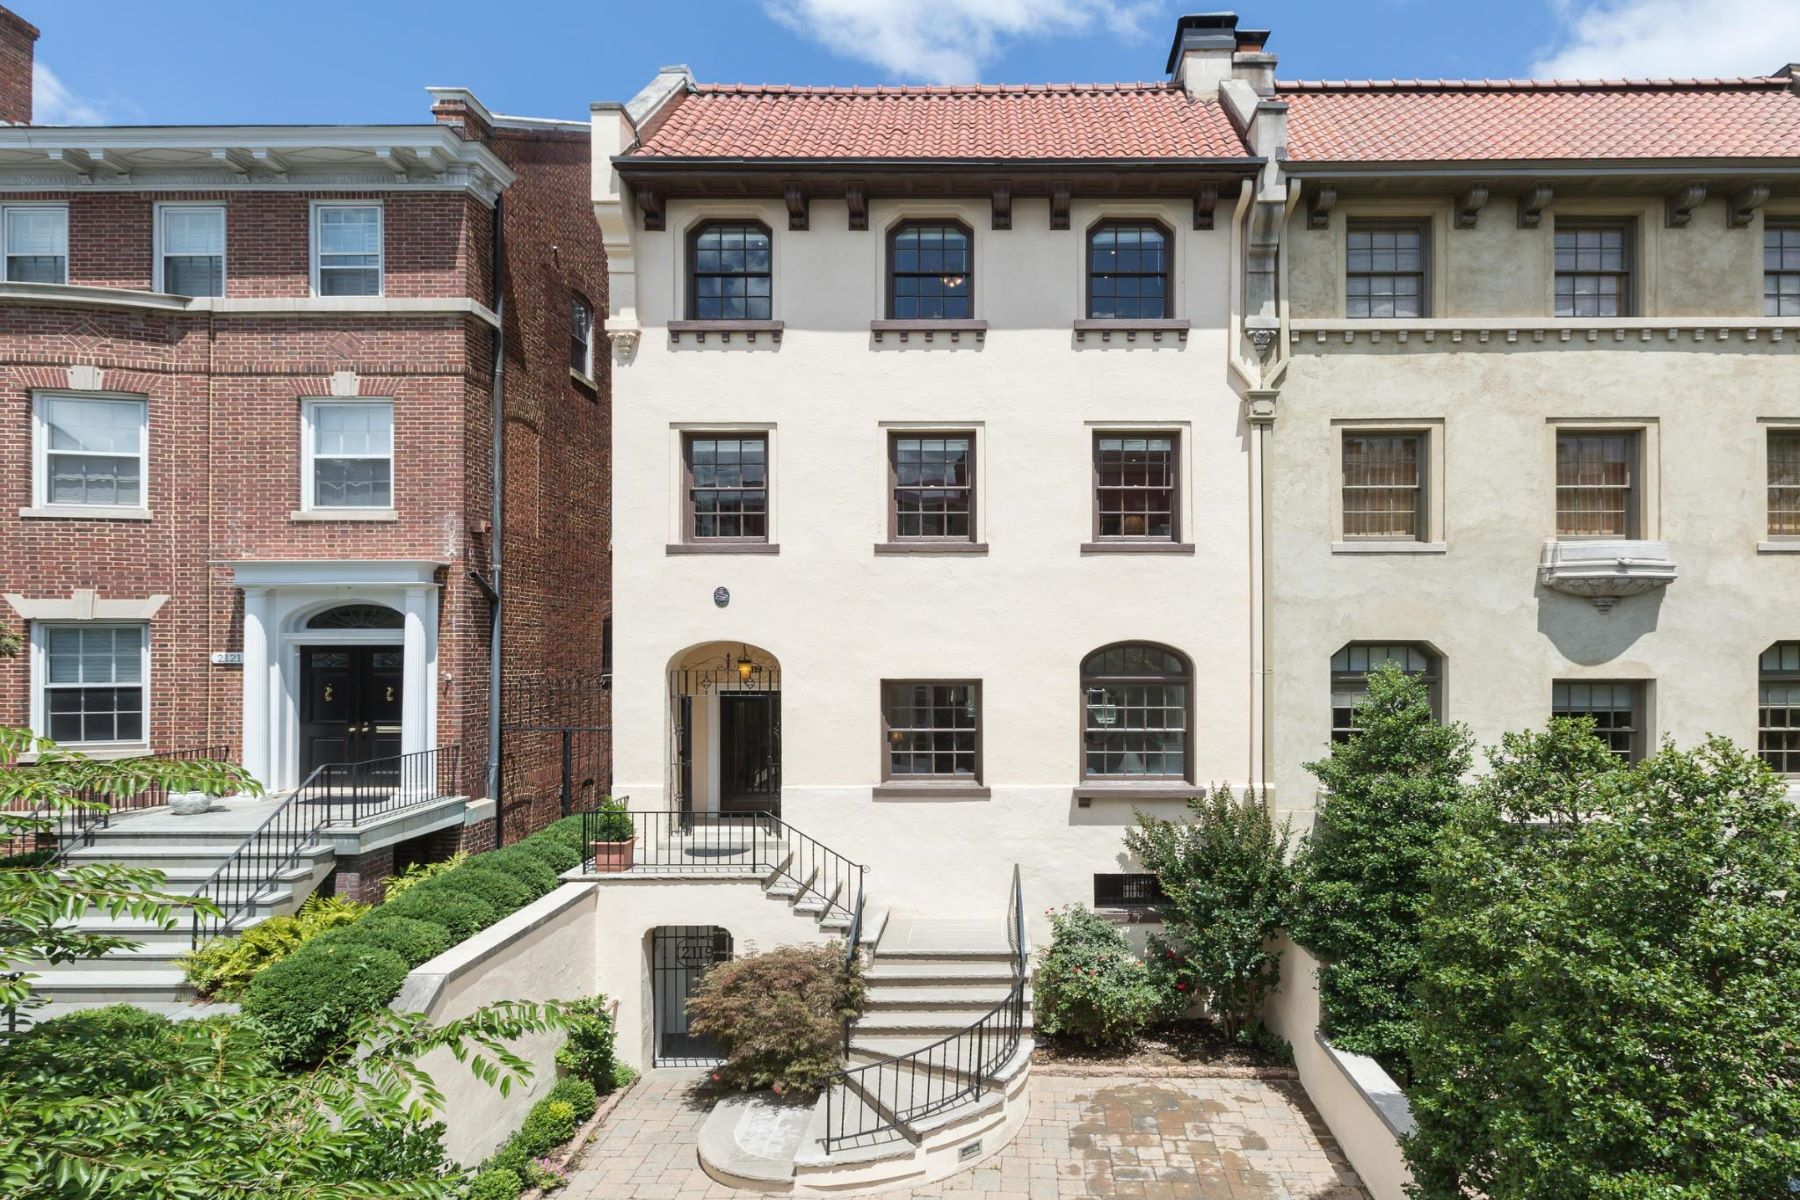 Townhouse for Sale at Kalorama 2119 Leroy Pl Nw Washington, District Of Columbia 20008 United States